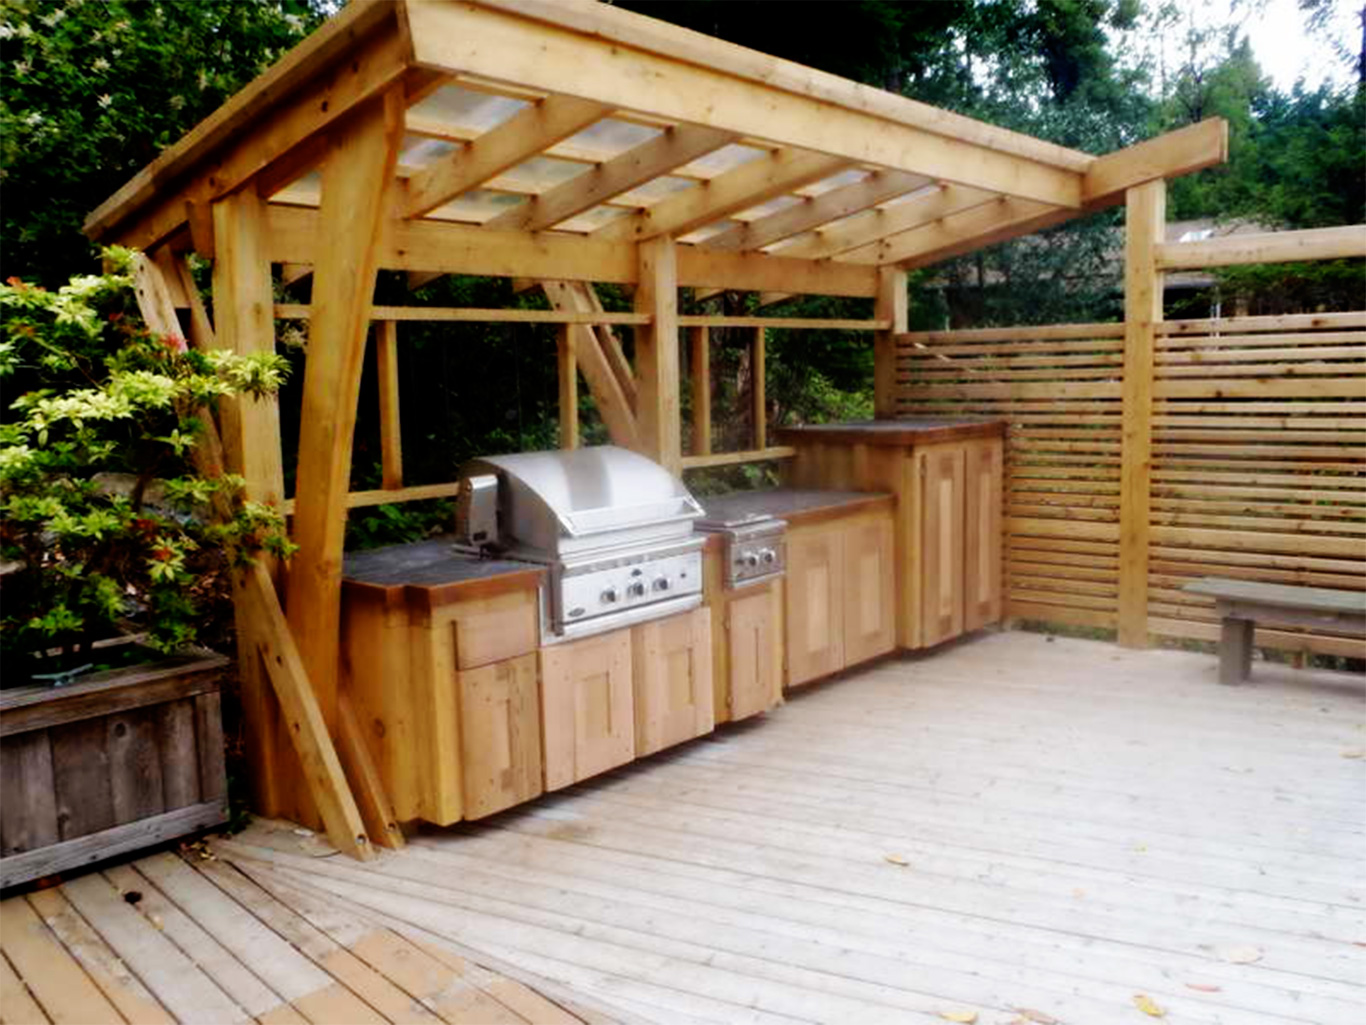 10 Outstanding Outdoor Kitchen Style Ideas on gazebo roof ideas, barn roof ideas, outdoor metal roof, grill roof ideas, bar roof ideas, outdoor bar with roof, pizza oven roof ideas, outdoor kitchens and patios, balcony roof ideas, outdoor grill roof, patio roof ideas, outdoor kitchens and grills, side-entry roof ideas, chicken coop roof ideas, small rustic kitchen backsplash ideas, terrace roof ideas, playground roof ideas, tile roof ideas, garage roof ideas, deck roof ideas,